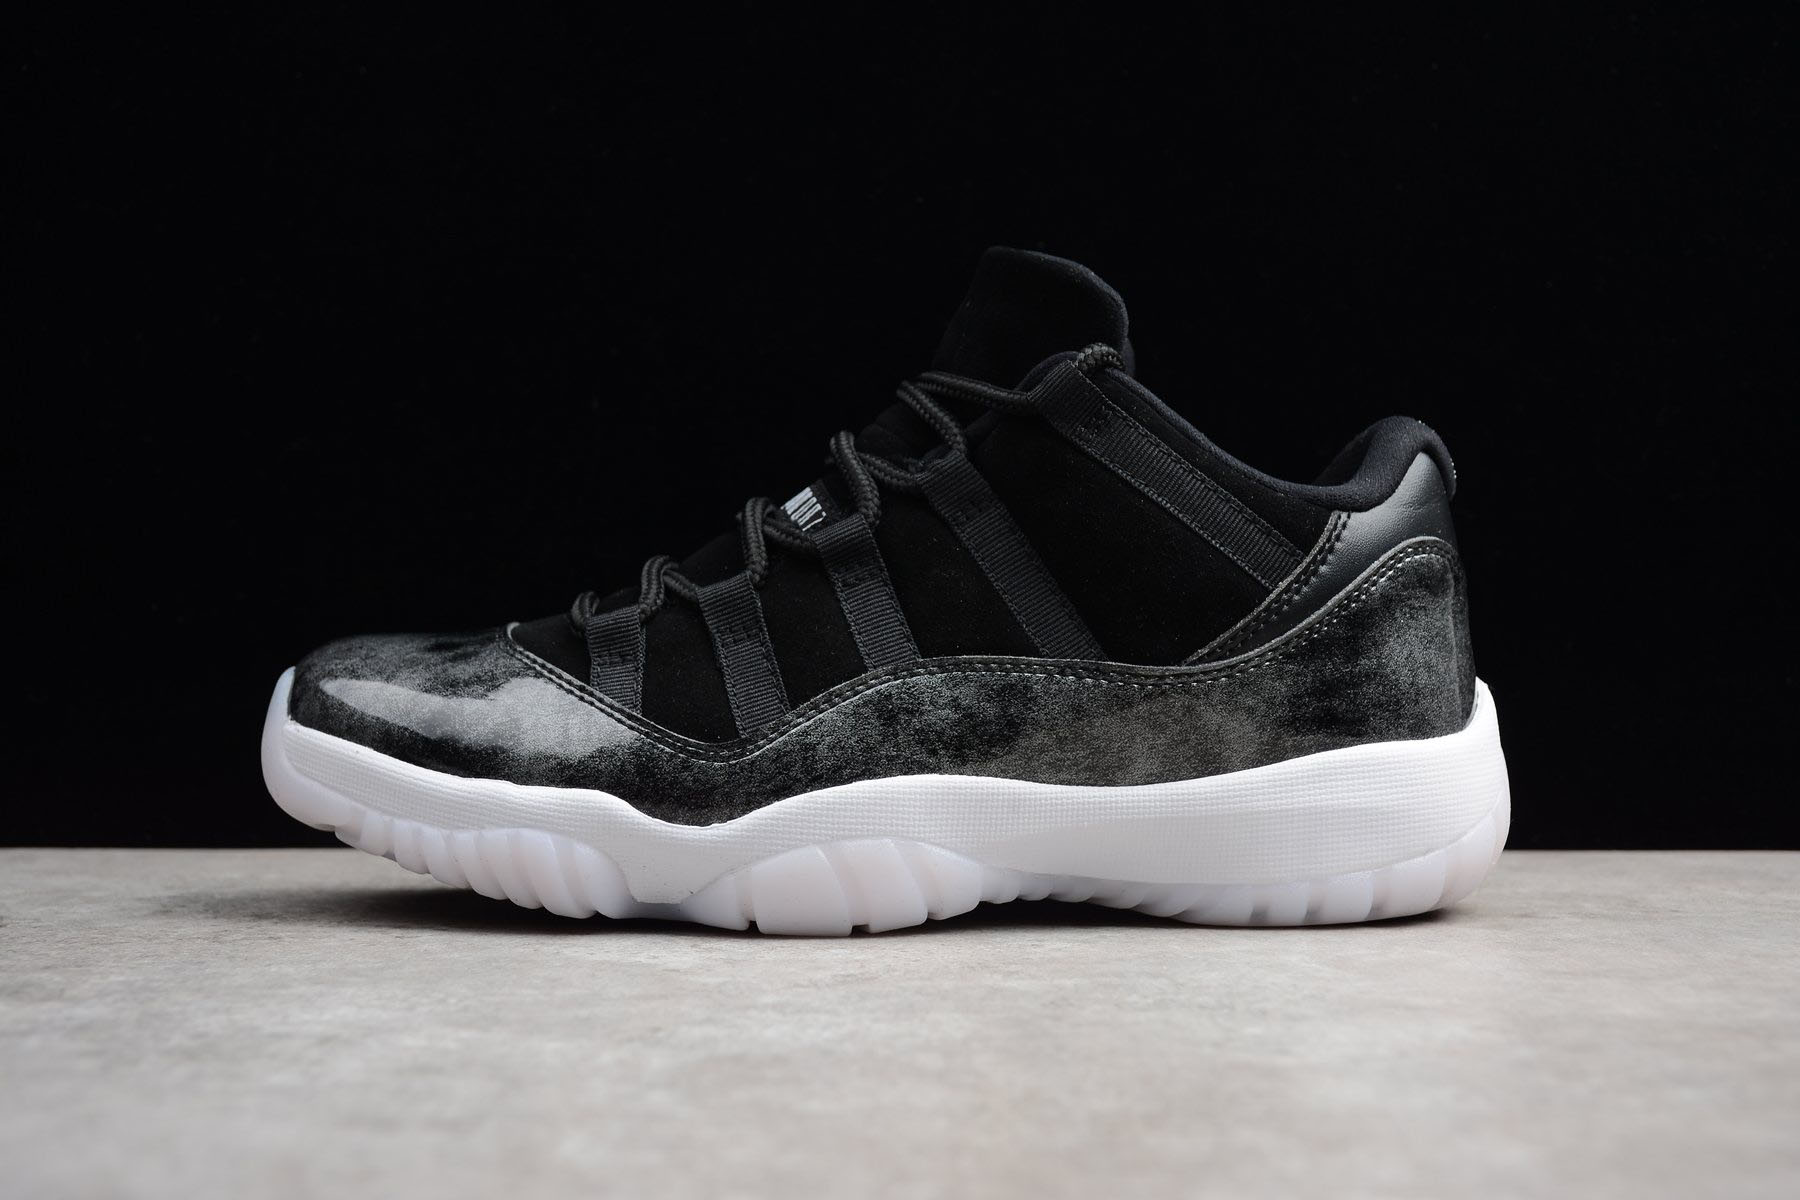 New Air Jordan 11 Retro Low Barons Black/Metallic Silver-White 528895-010